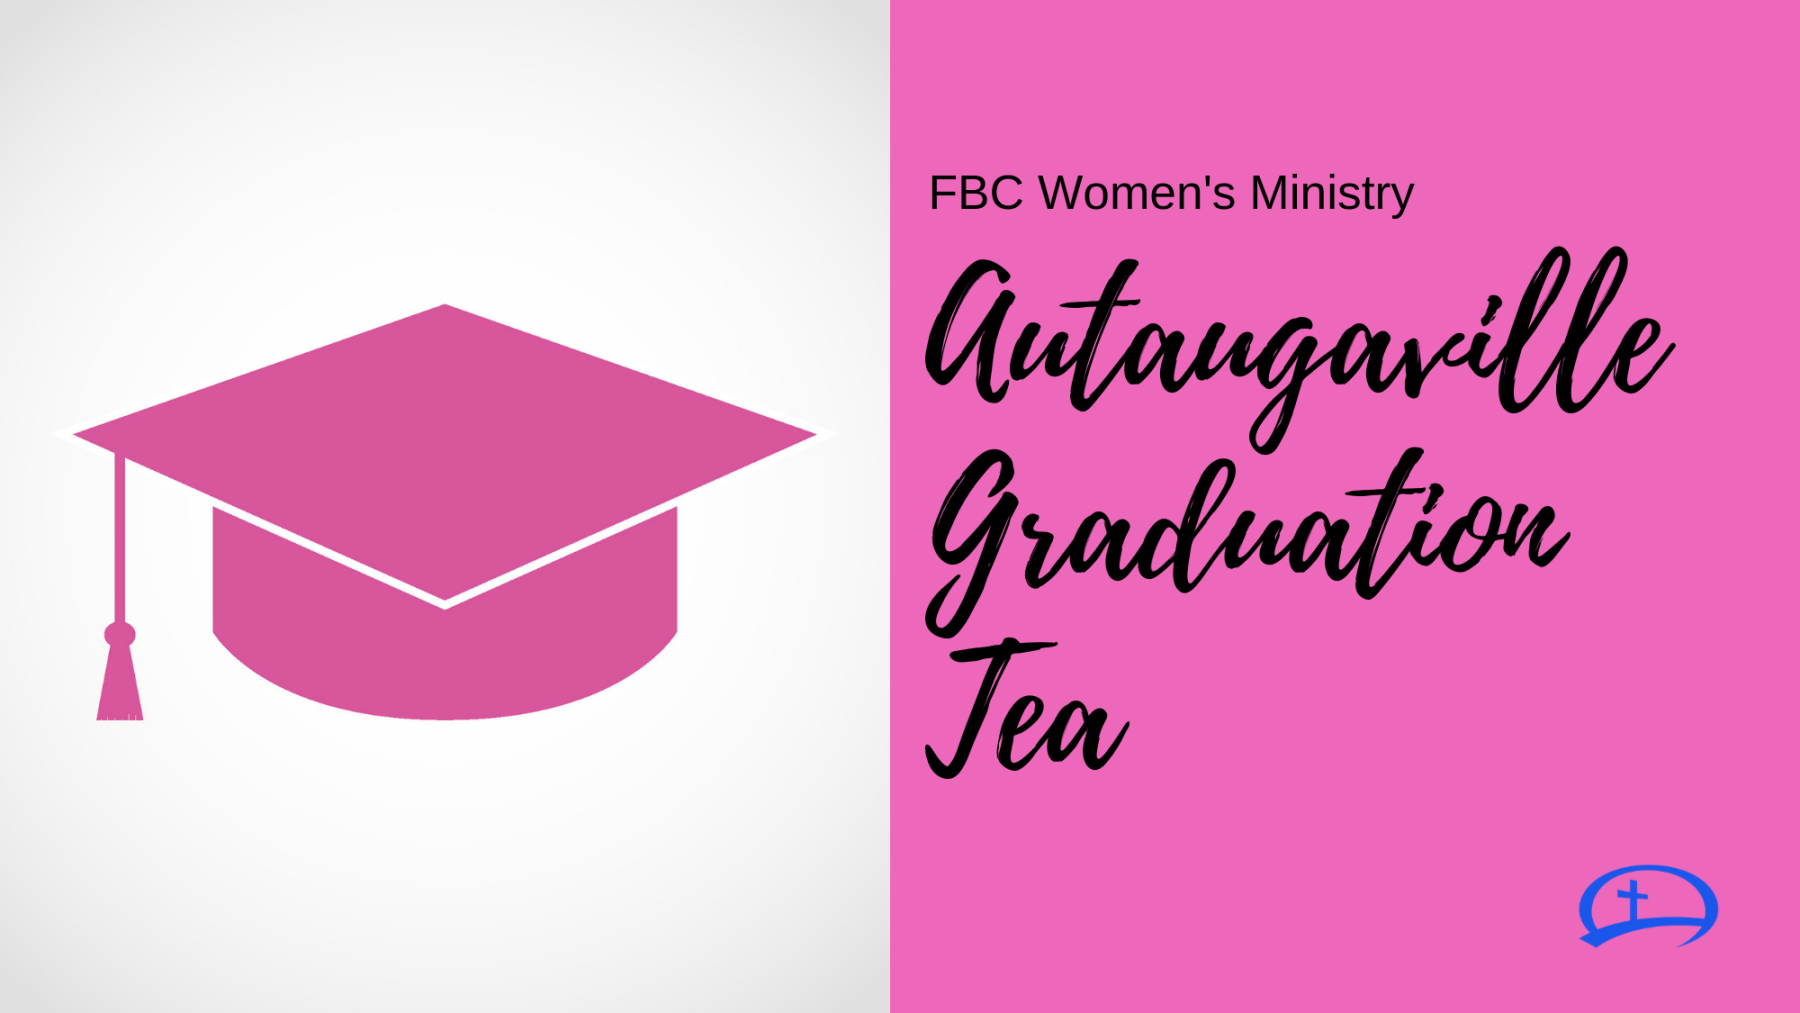 Autaugaville Graduation Tea